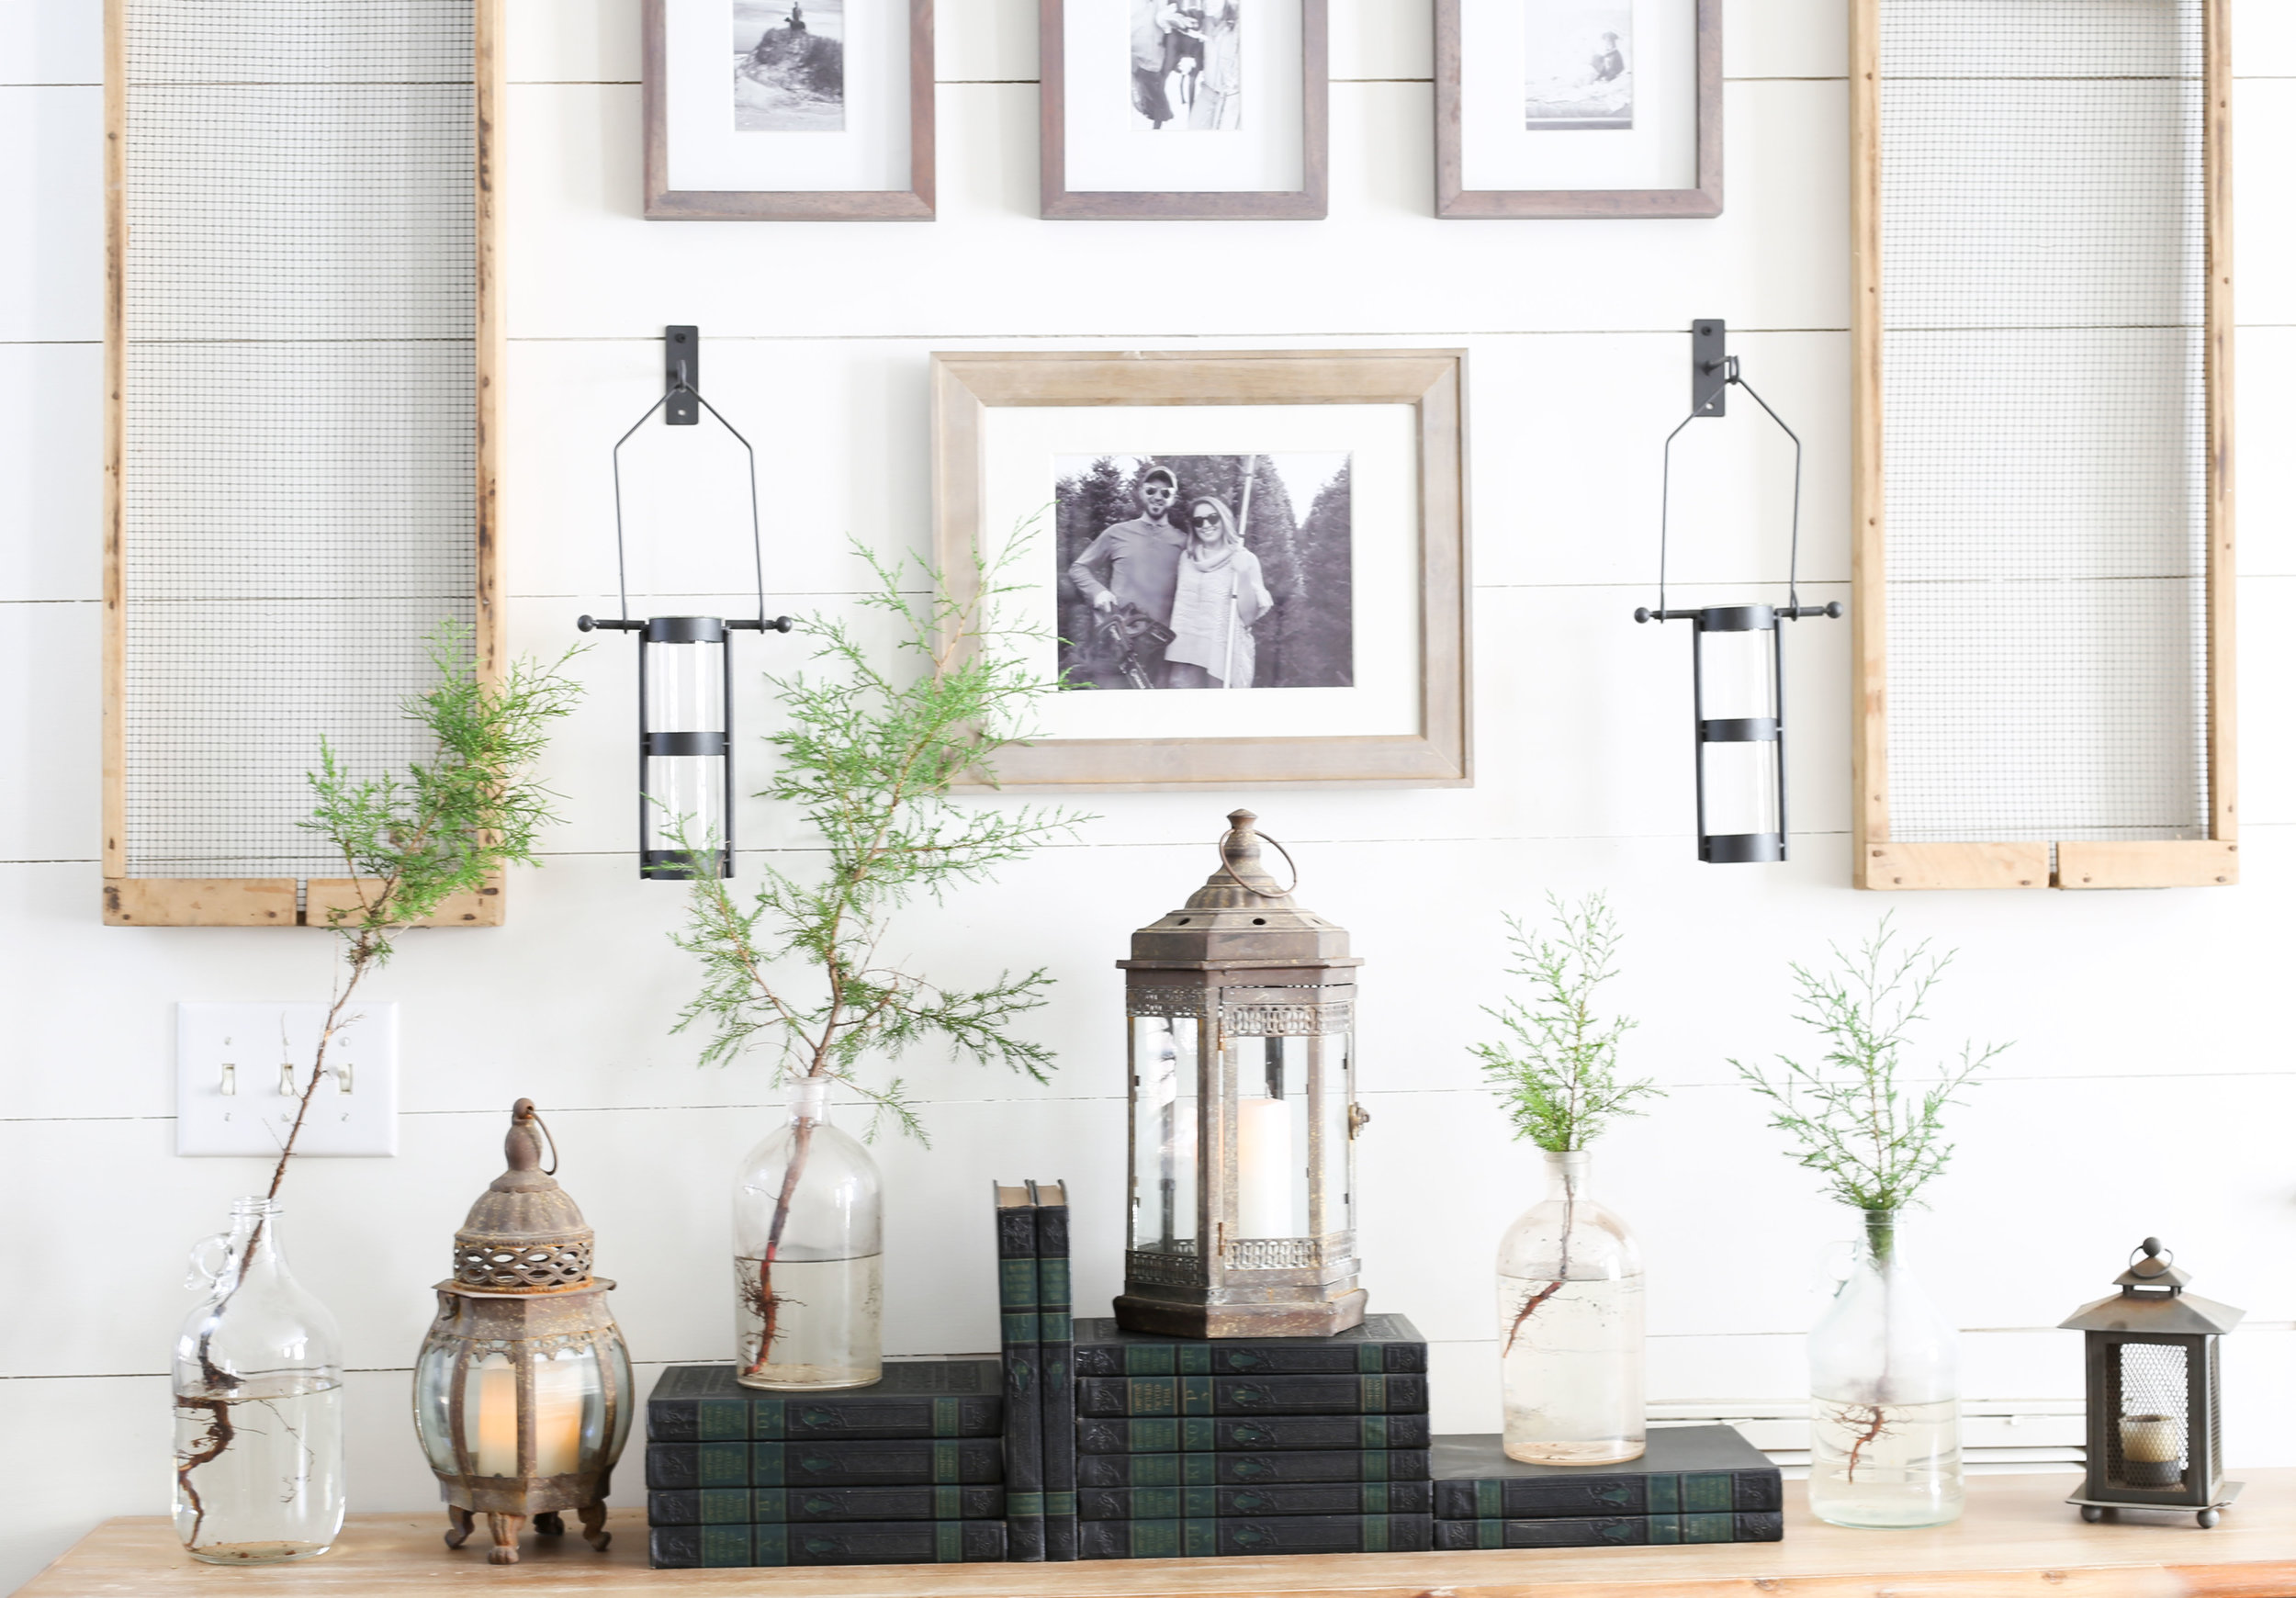 Christmas 2017 Home Tour: Deck The Blogs- Christmas Table with old books and pine trees in bottles- Plum Pretty Decor & Design's Christmas Home Tour